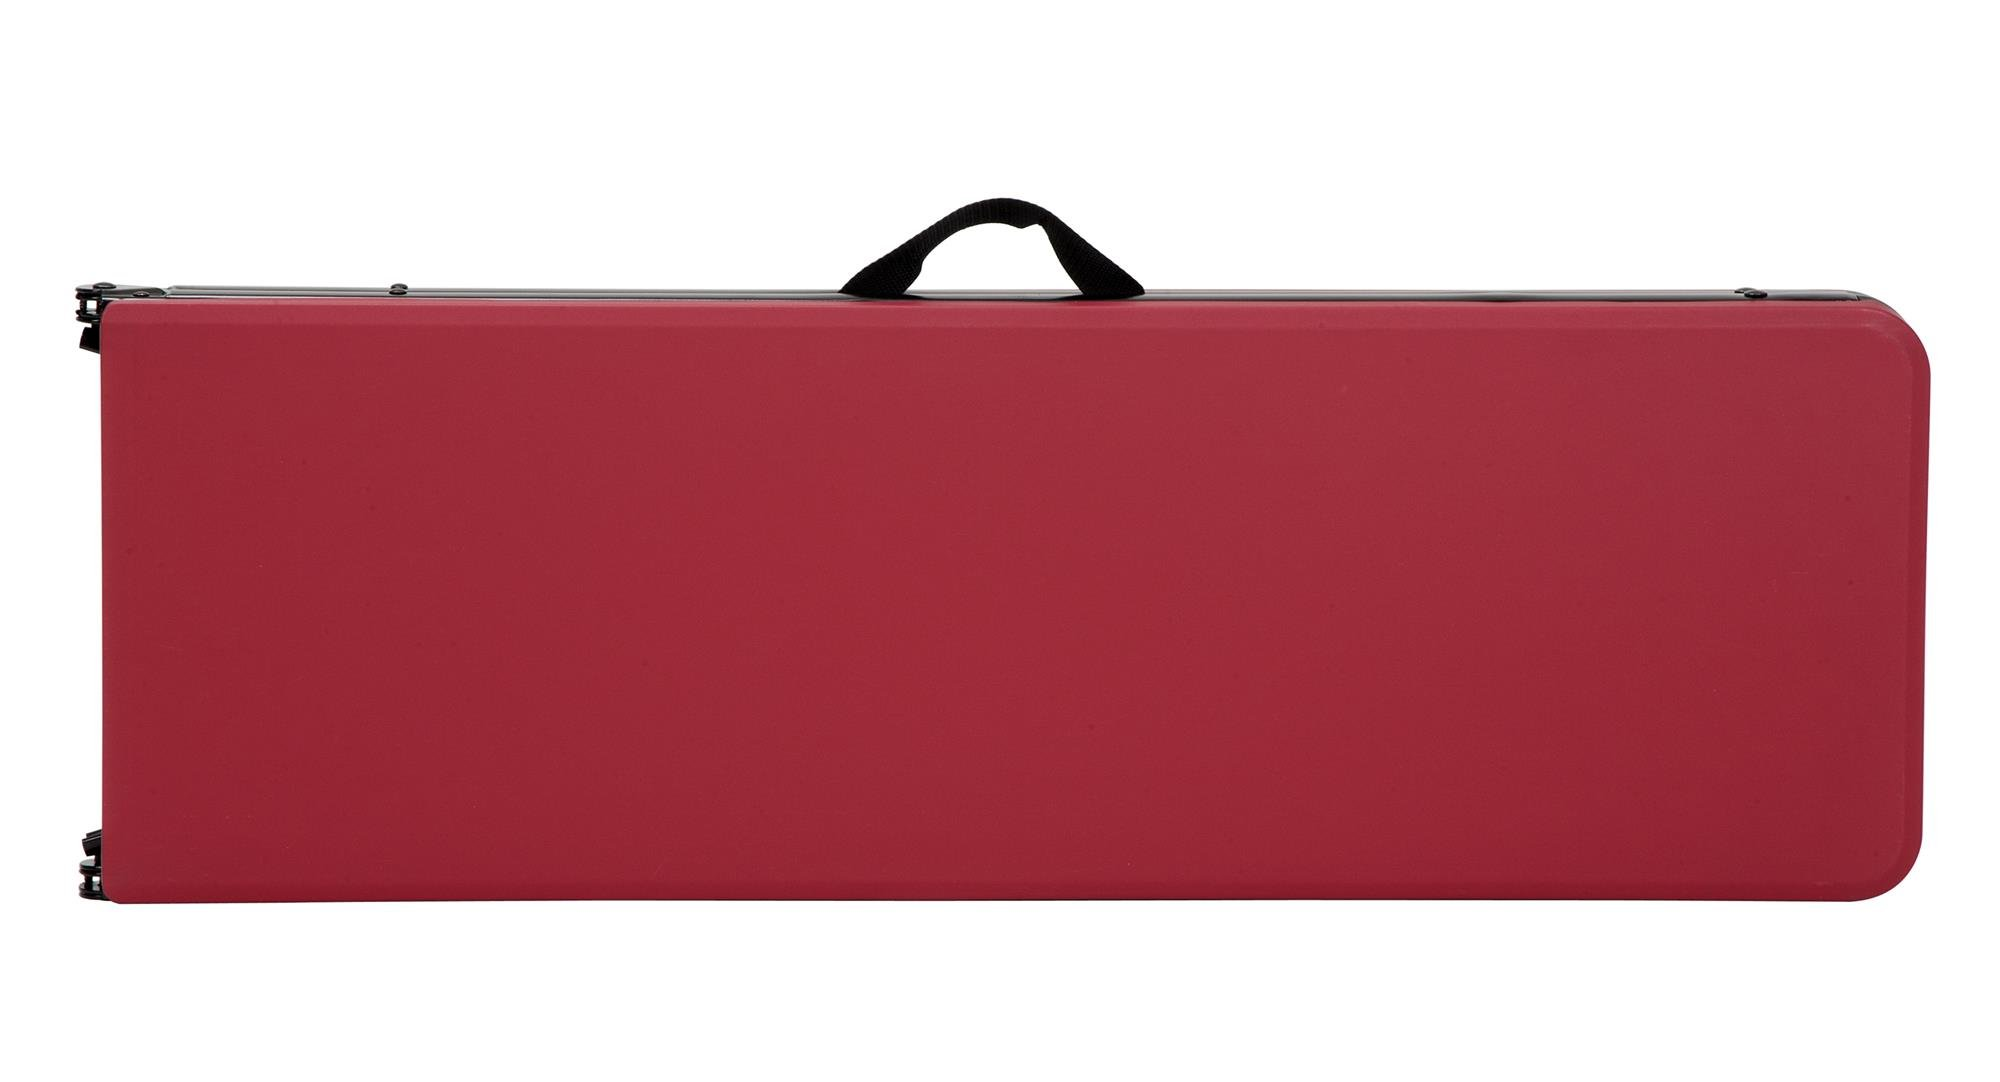 COSCO 6 ft. Indoor Outdoor Center Fold Tailgate Bench with Carrying Handle, Red Bench Top, Black Frame, 2-pack by Cosco Outdoor Living (Image #3)